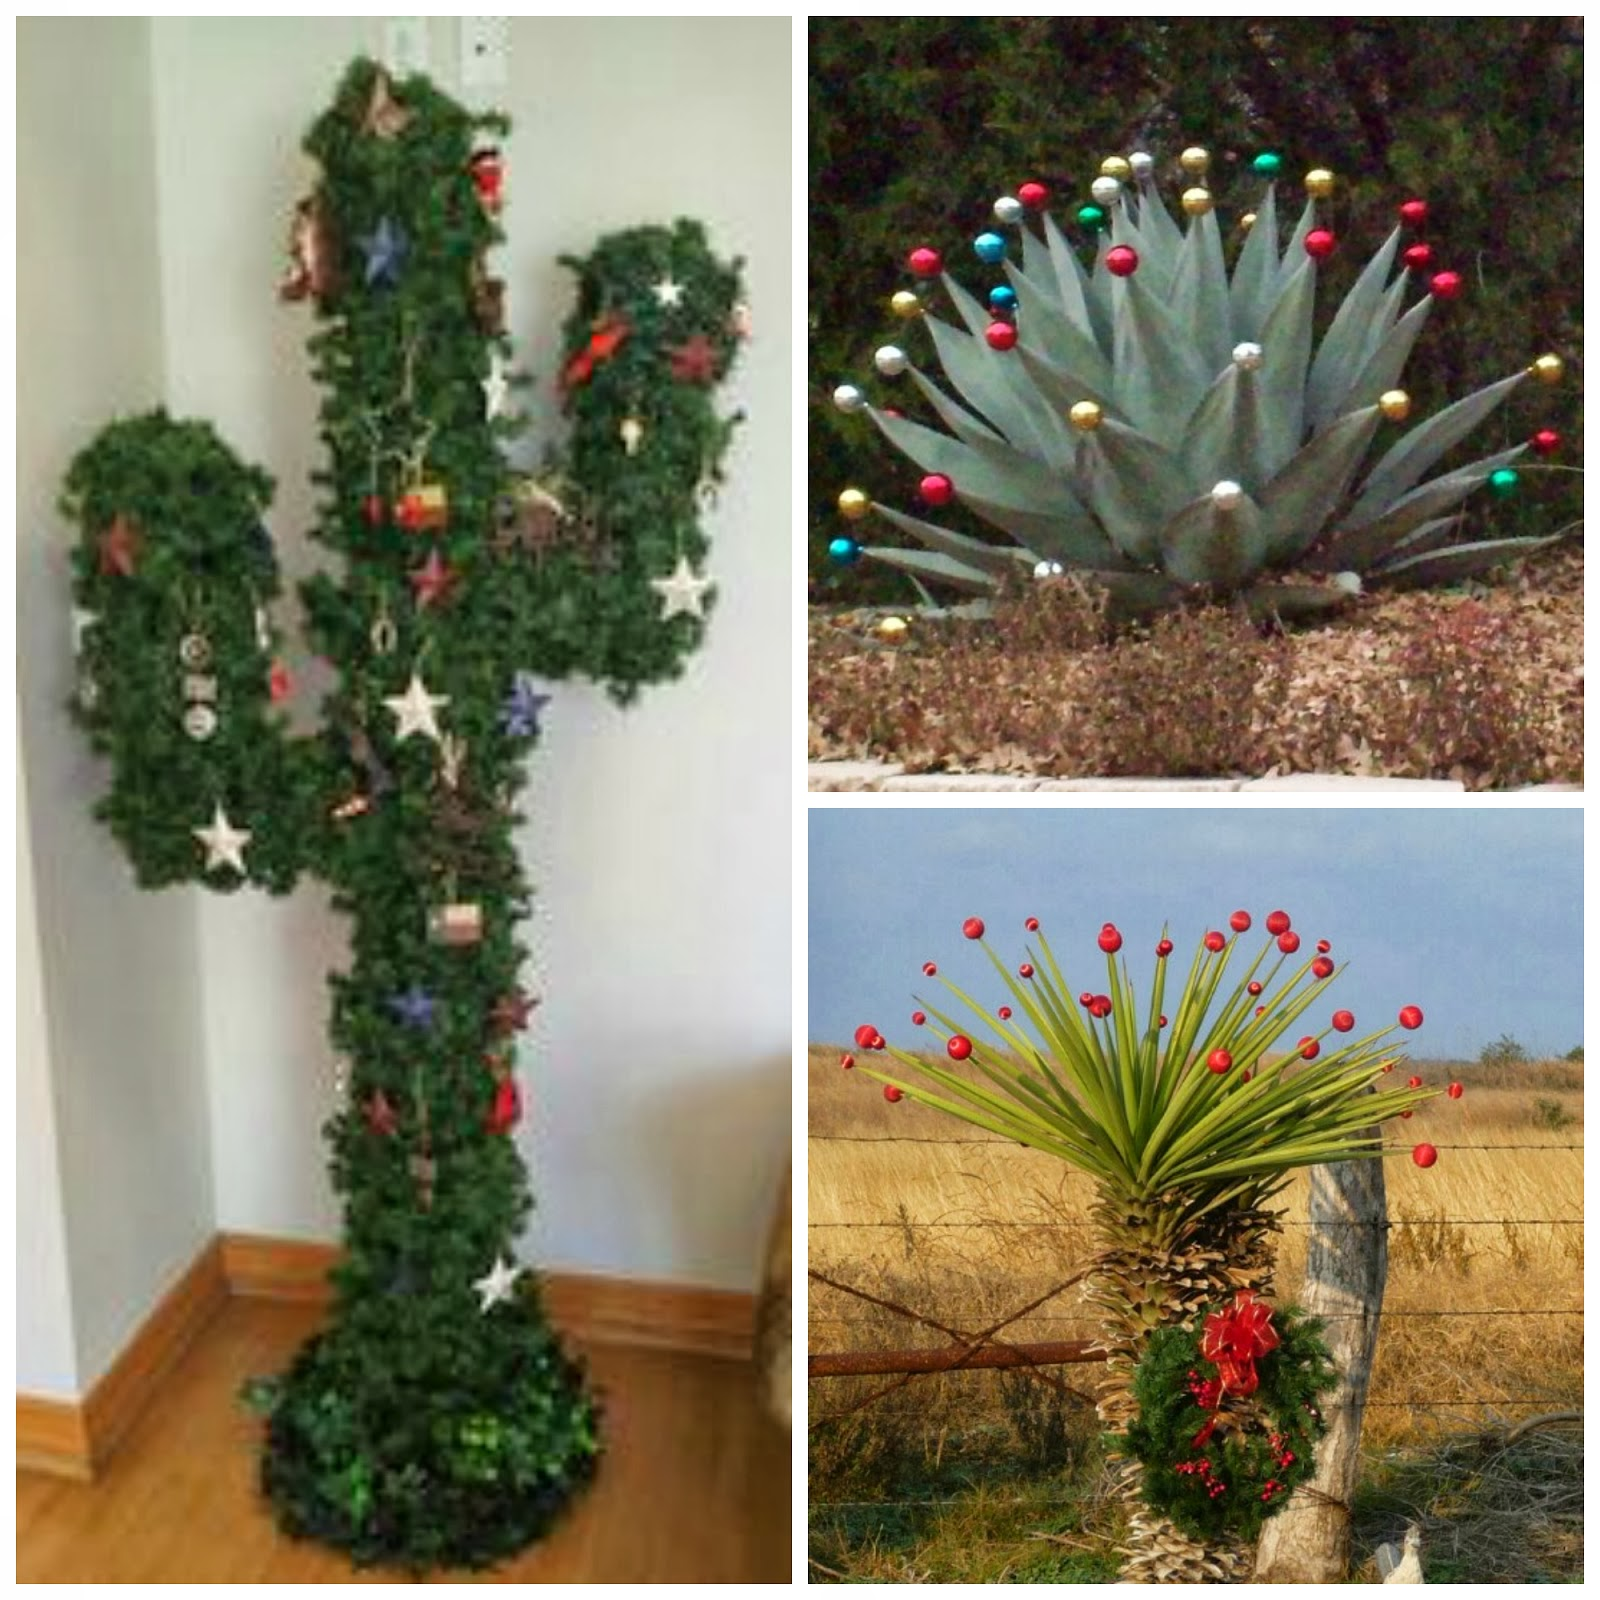 Cactus Decorated For Christmas: Your Merry Mailbox: Texas Week: Merry Christmas Y'all